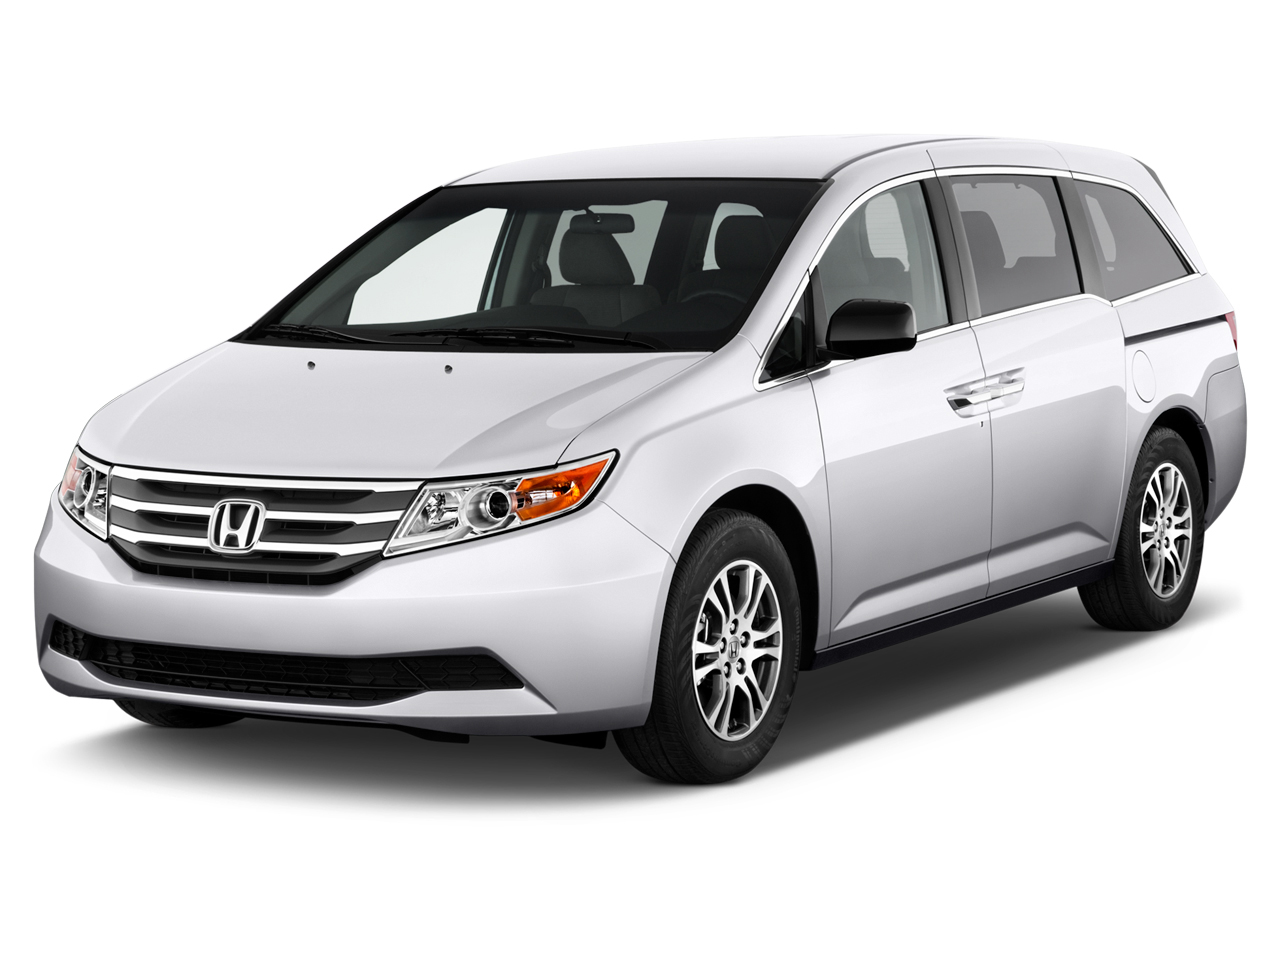 2012 Honda Odyssey Review, Ratings, Specs, Prices, and Photos - The Car Connection